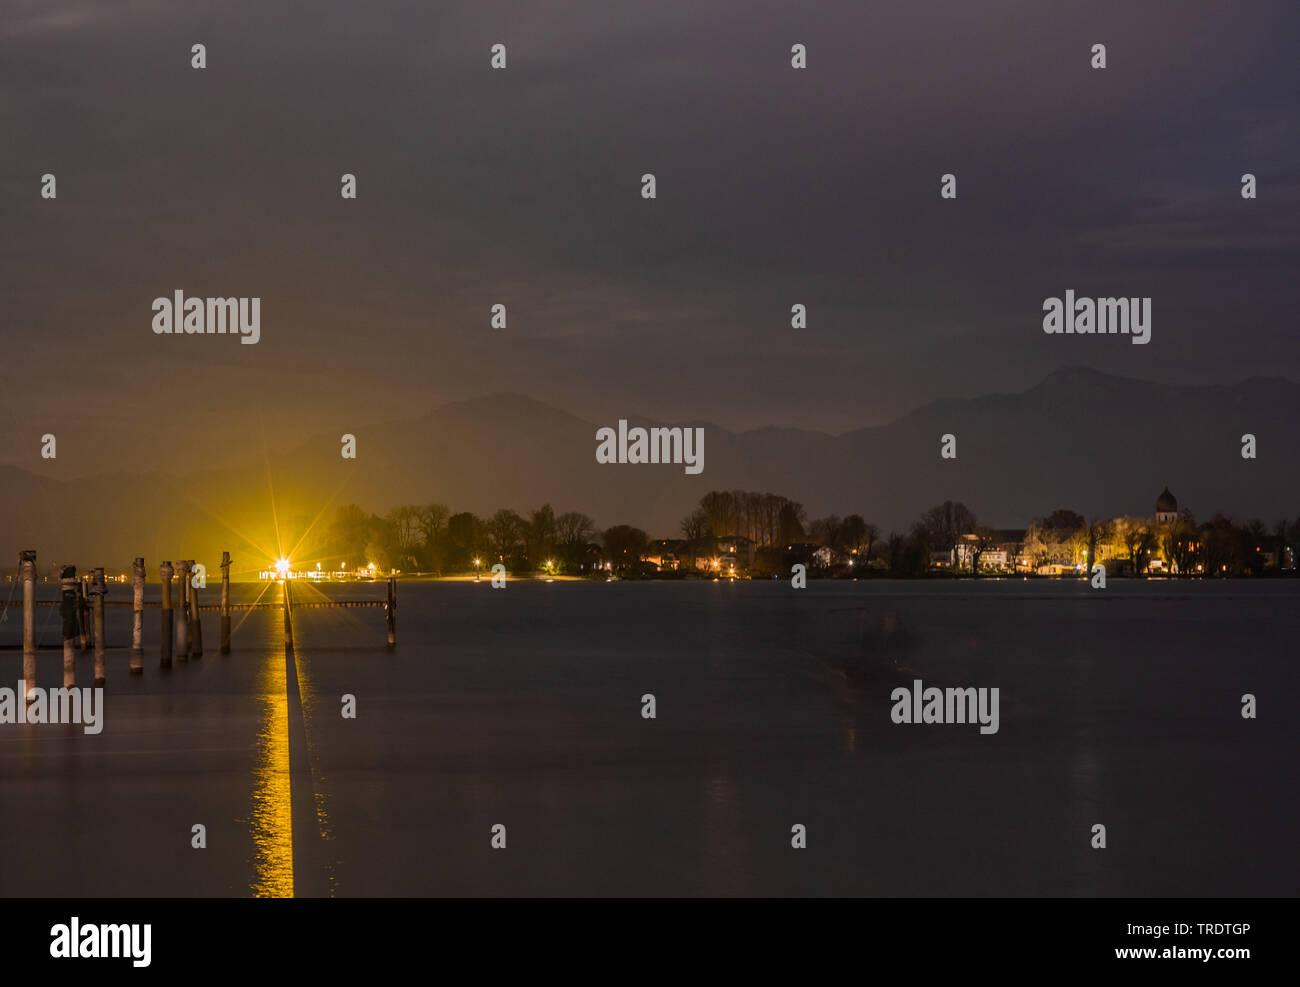 island Frauenchiemsee at night, the Alps in background, Germany, Bavaria, Lake Chiemsee Stock Photo